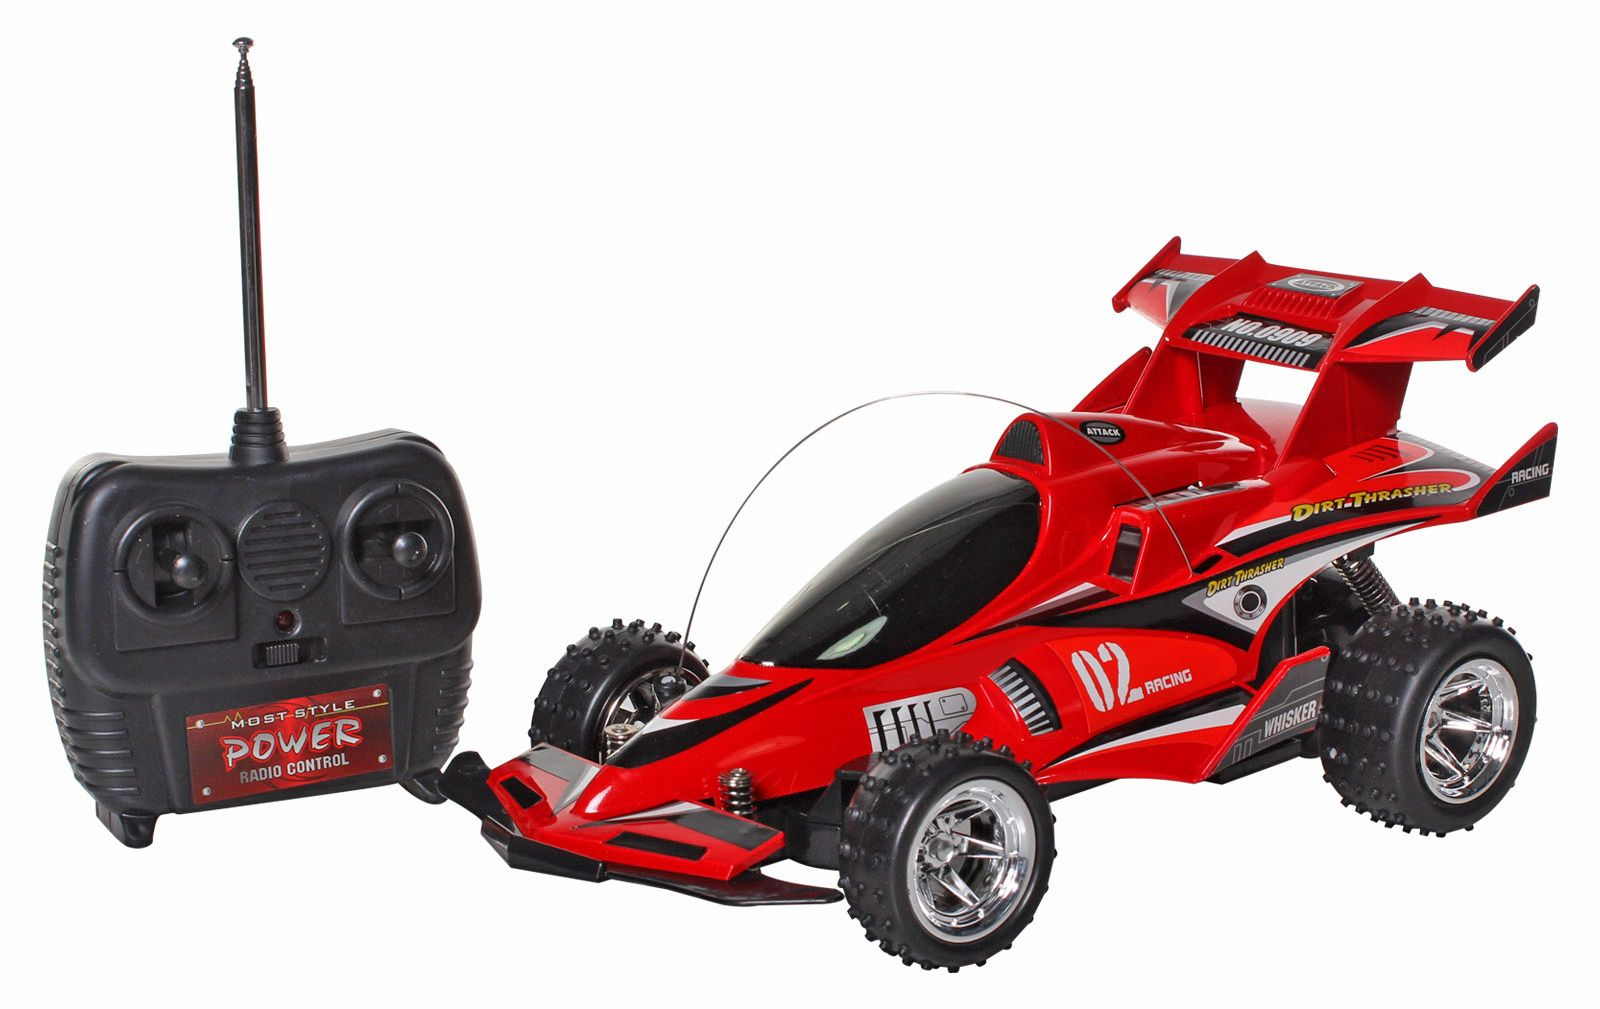 rc remote control cars with Radio Controlled Cars on 47d Engine 132 Trumpeter P 20308 also Cheap Rc Cars For Sale also Elegoo Uno Project Upgraded Smart Robot Car Kit V2 0 furthermore Traxxas  s Up The X Maxx For 8s Lipo Power additionally Product large.